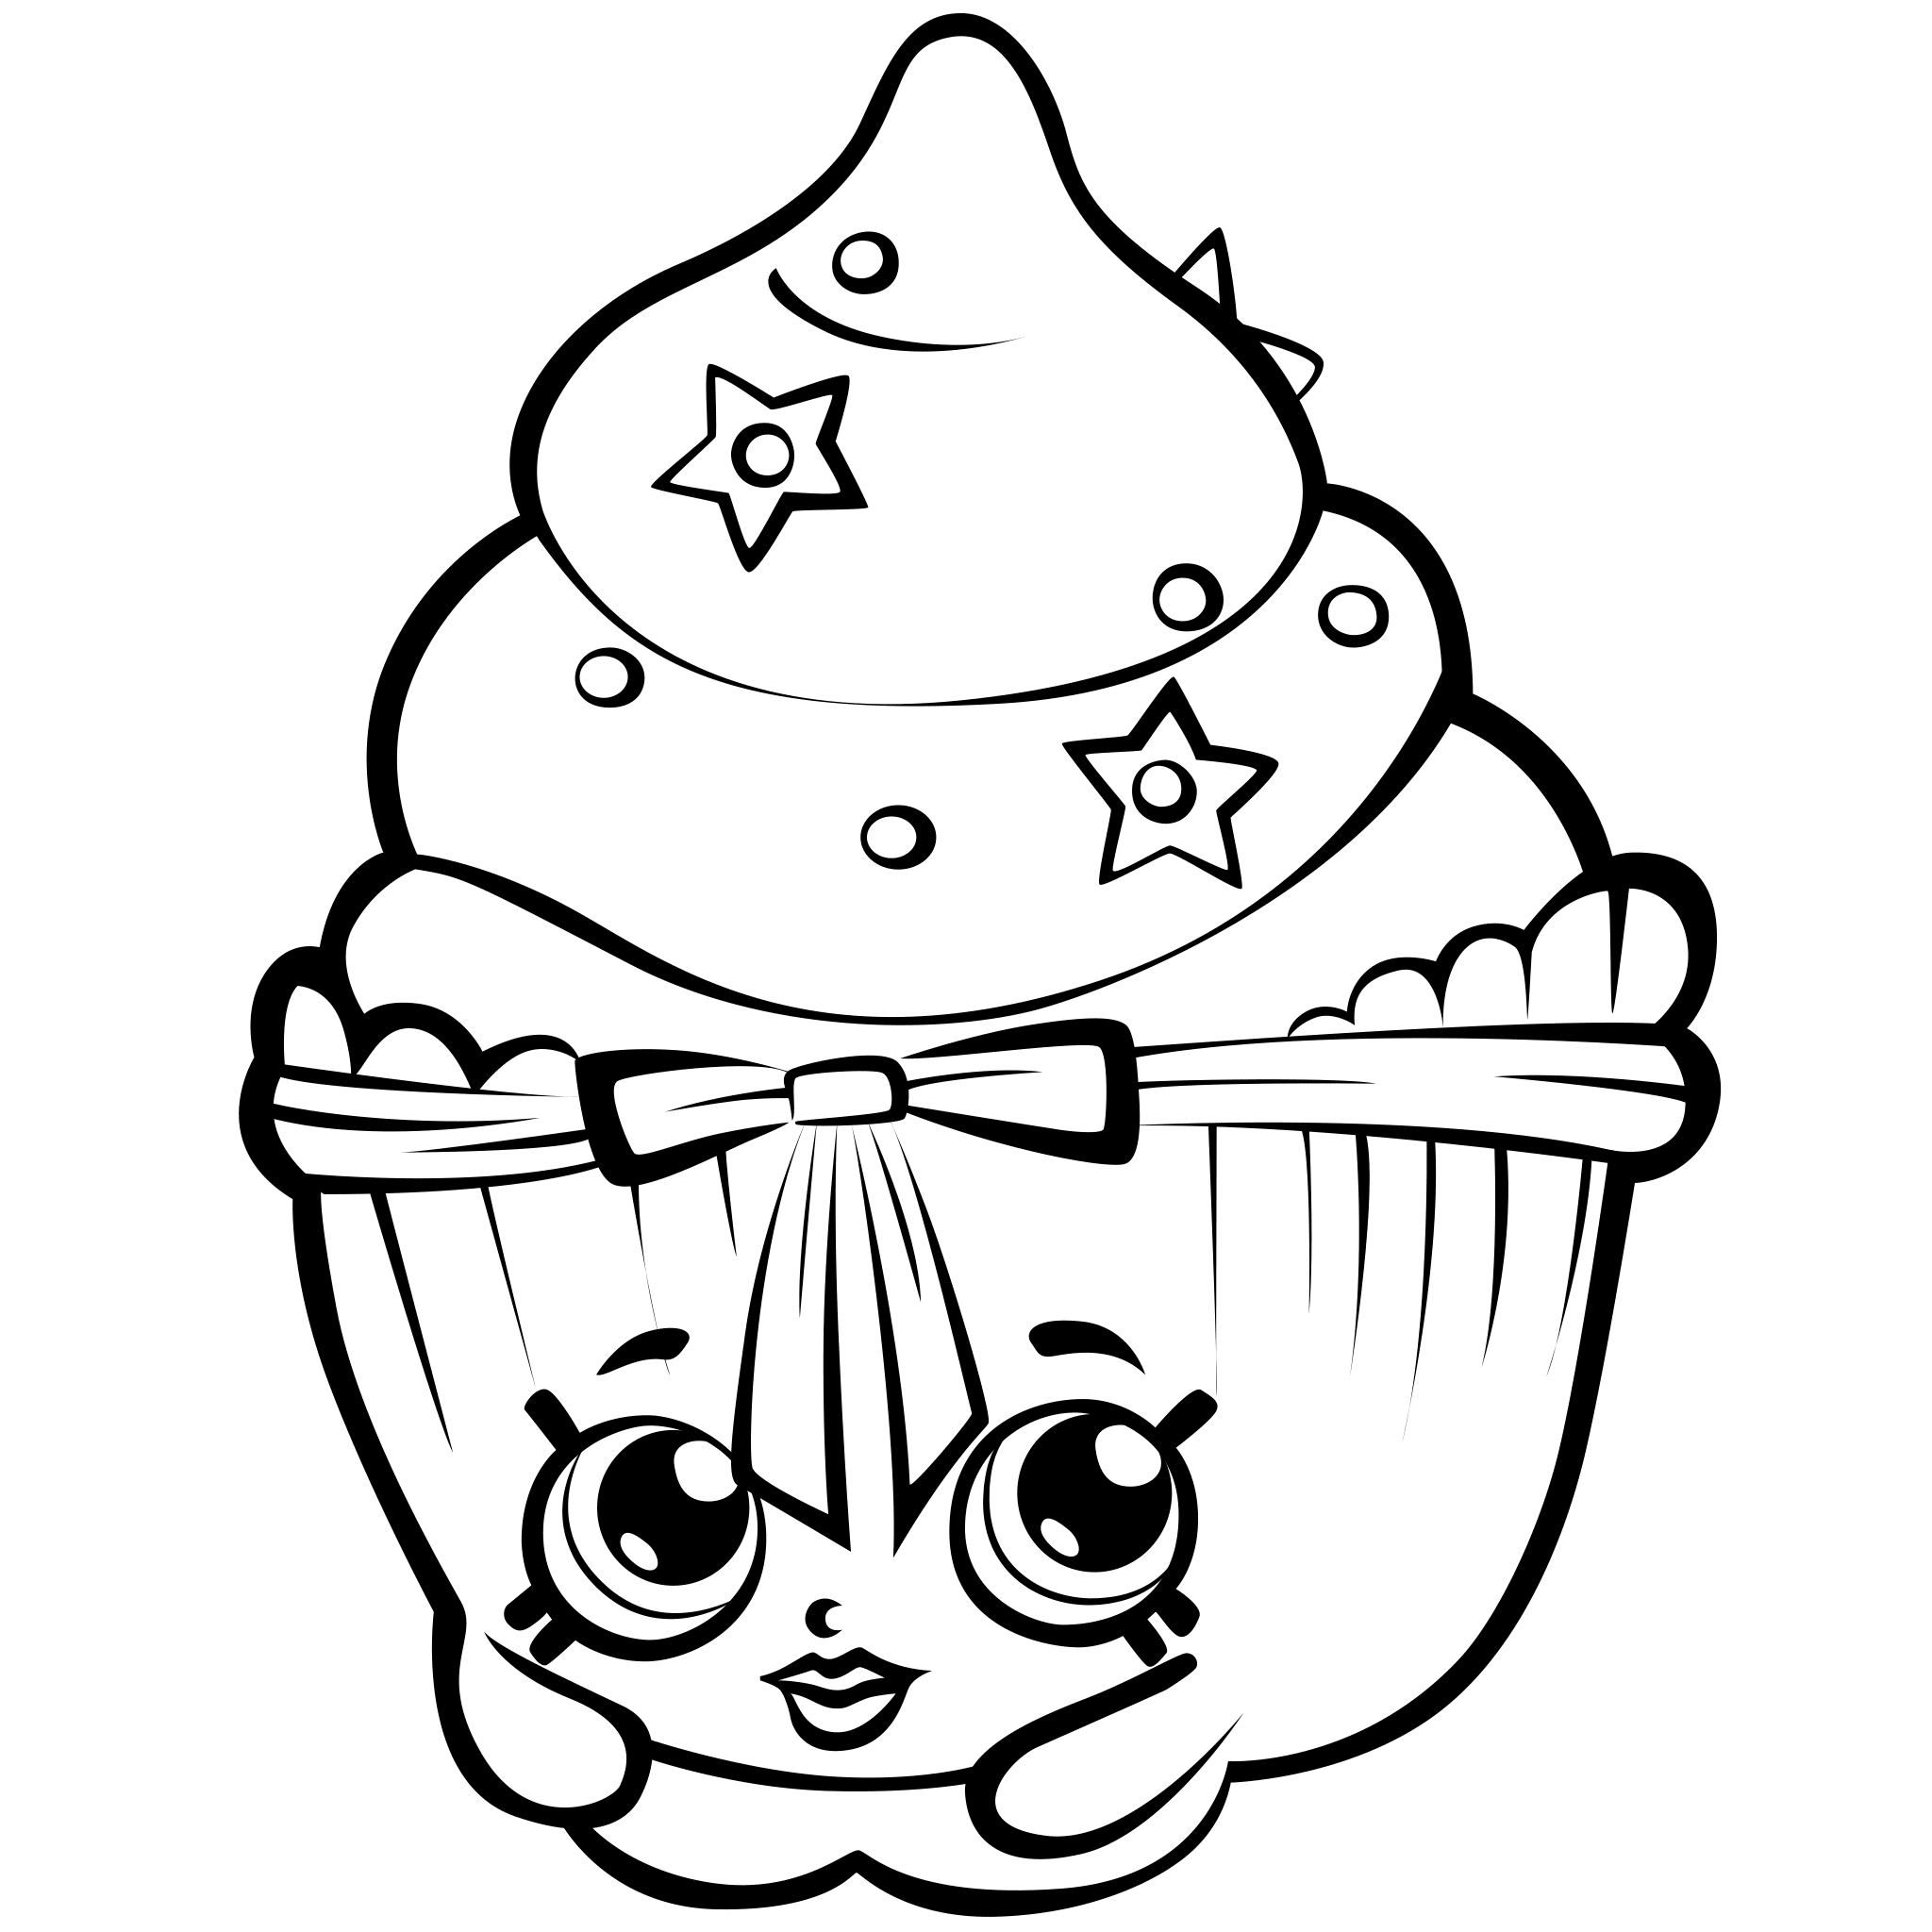 coloring worksheets shopkins print shopkins coloring pages printable free coloring sheets coloring worksheets shopkins